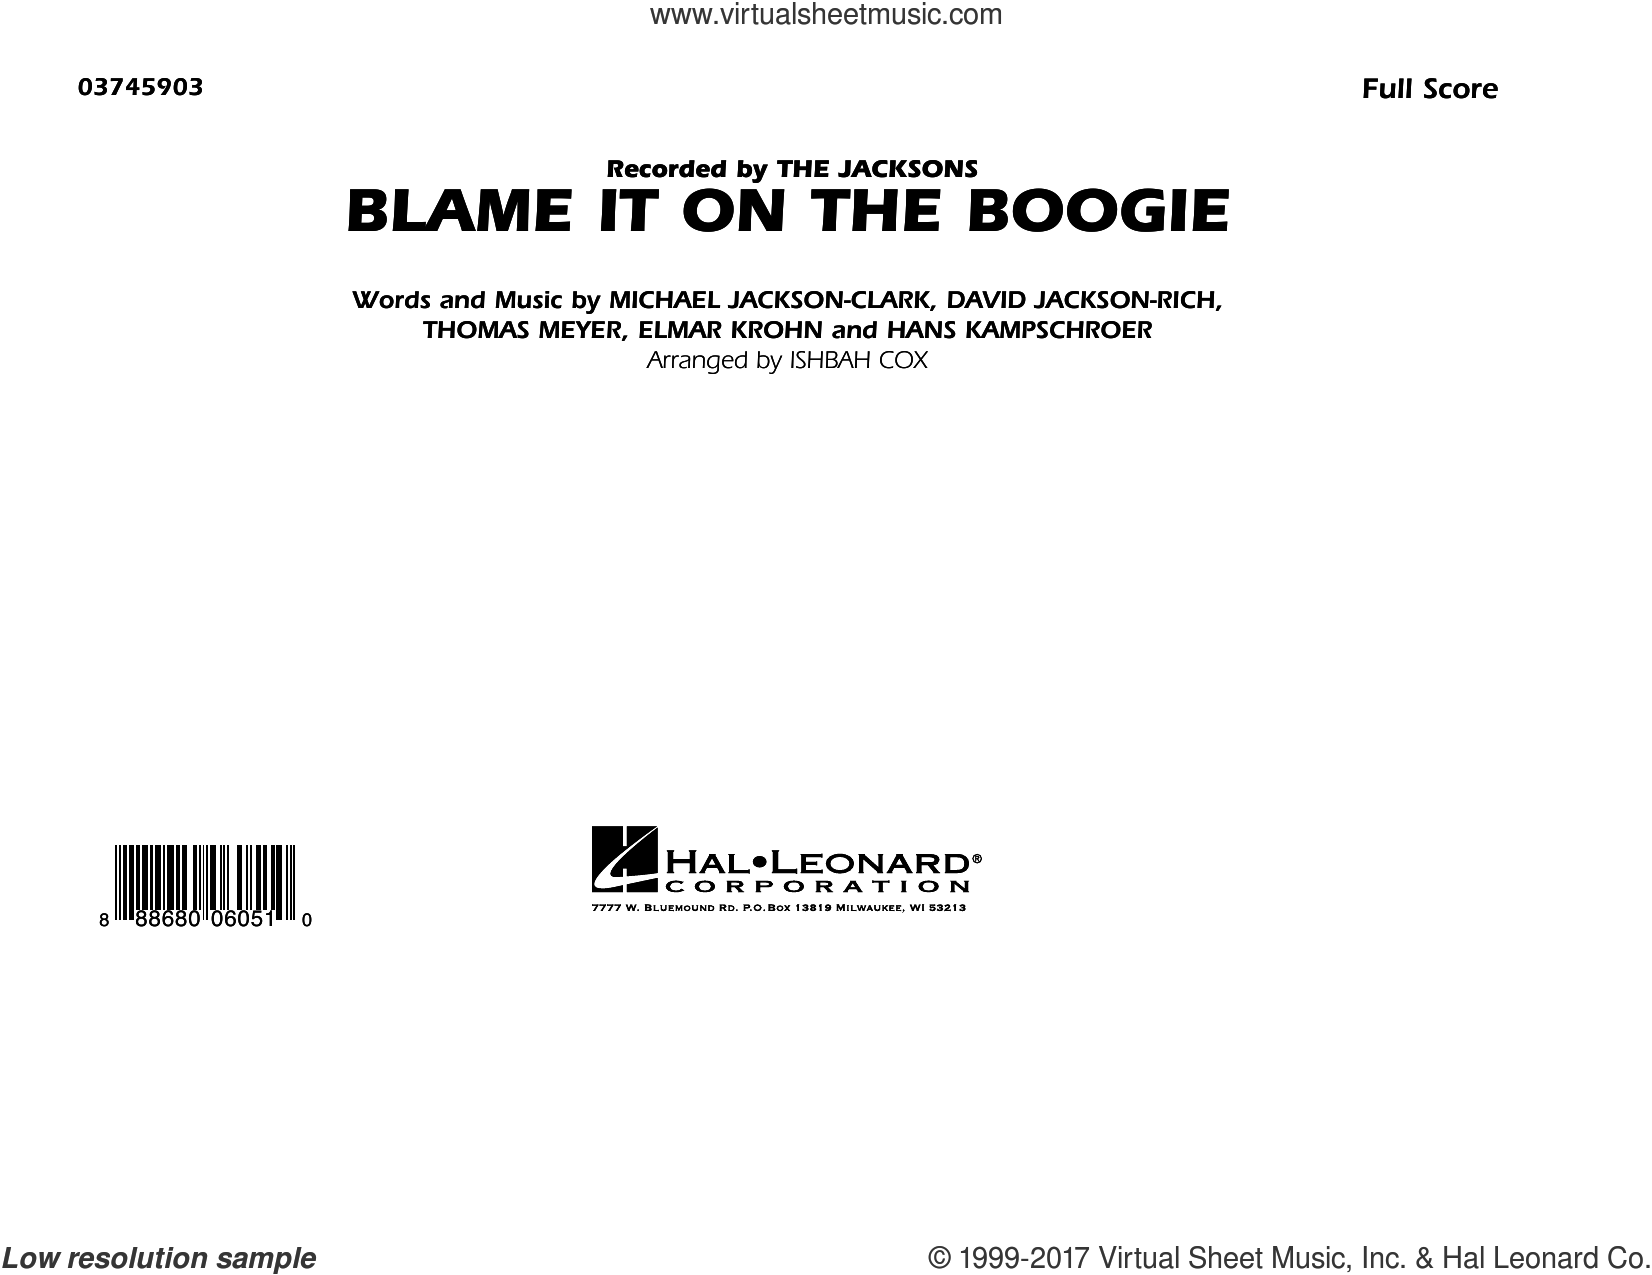 Blame It on the Boogie (COMPLETE) sheet music for marching band by Ishbah Cox, David Jackson Rich, Elmar Krohn, Hans Kampschroer, Michael Jackson-Clark and Thomas Meyer, intermediate skill level